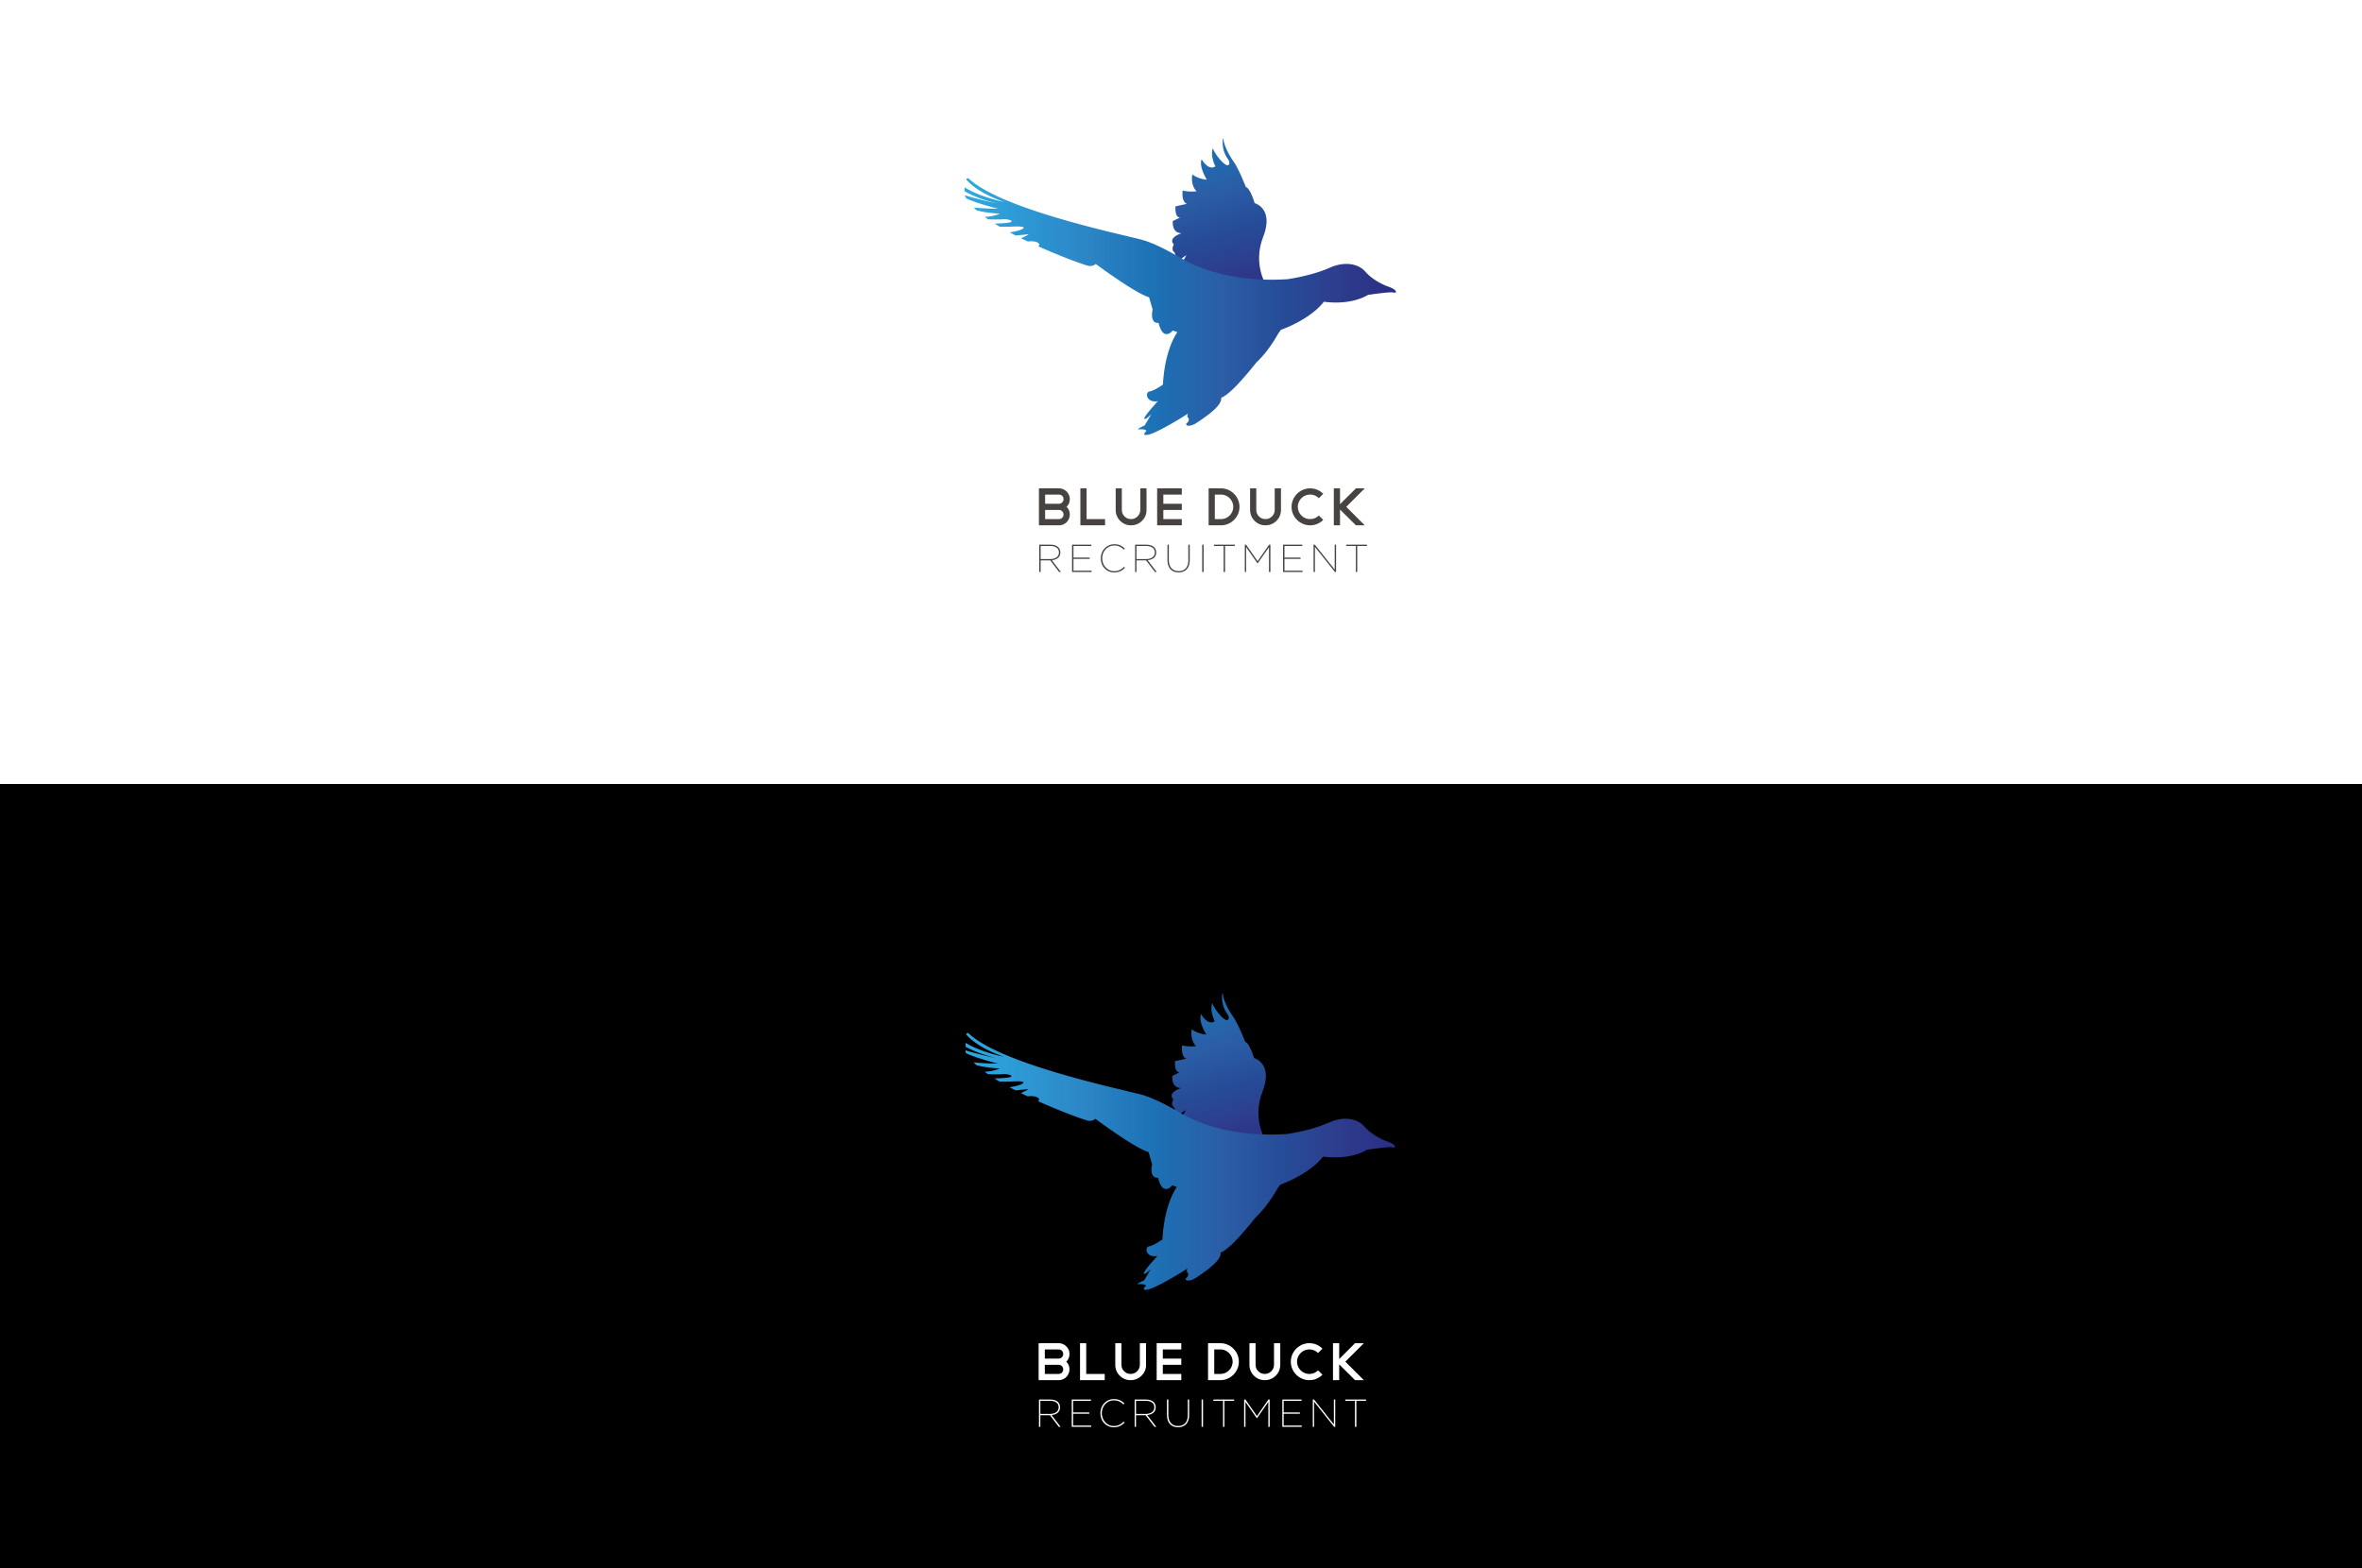 Blue Duck Recruitment Jack In A Box Design All Laid Back Beer Bavistr Cycles Bg World Wheels Precision Langua Team Love Tap Psas Logger Advert Vdg Fleece Packaging